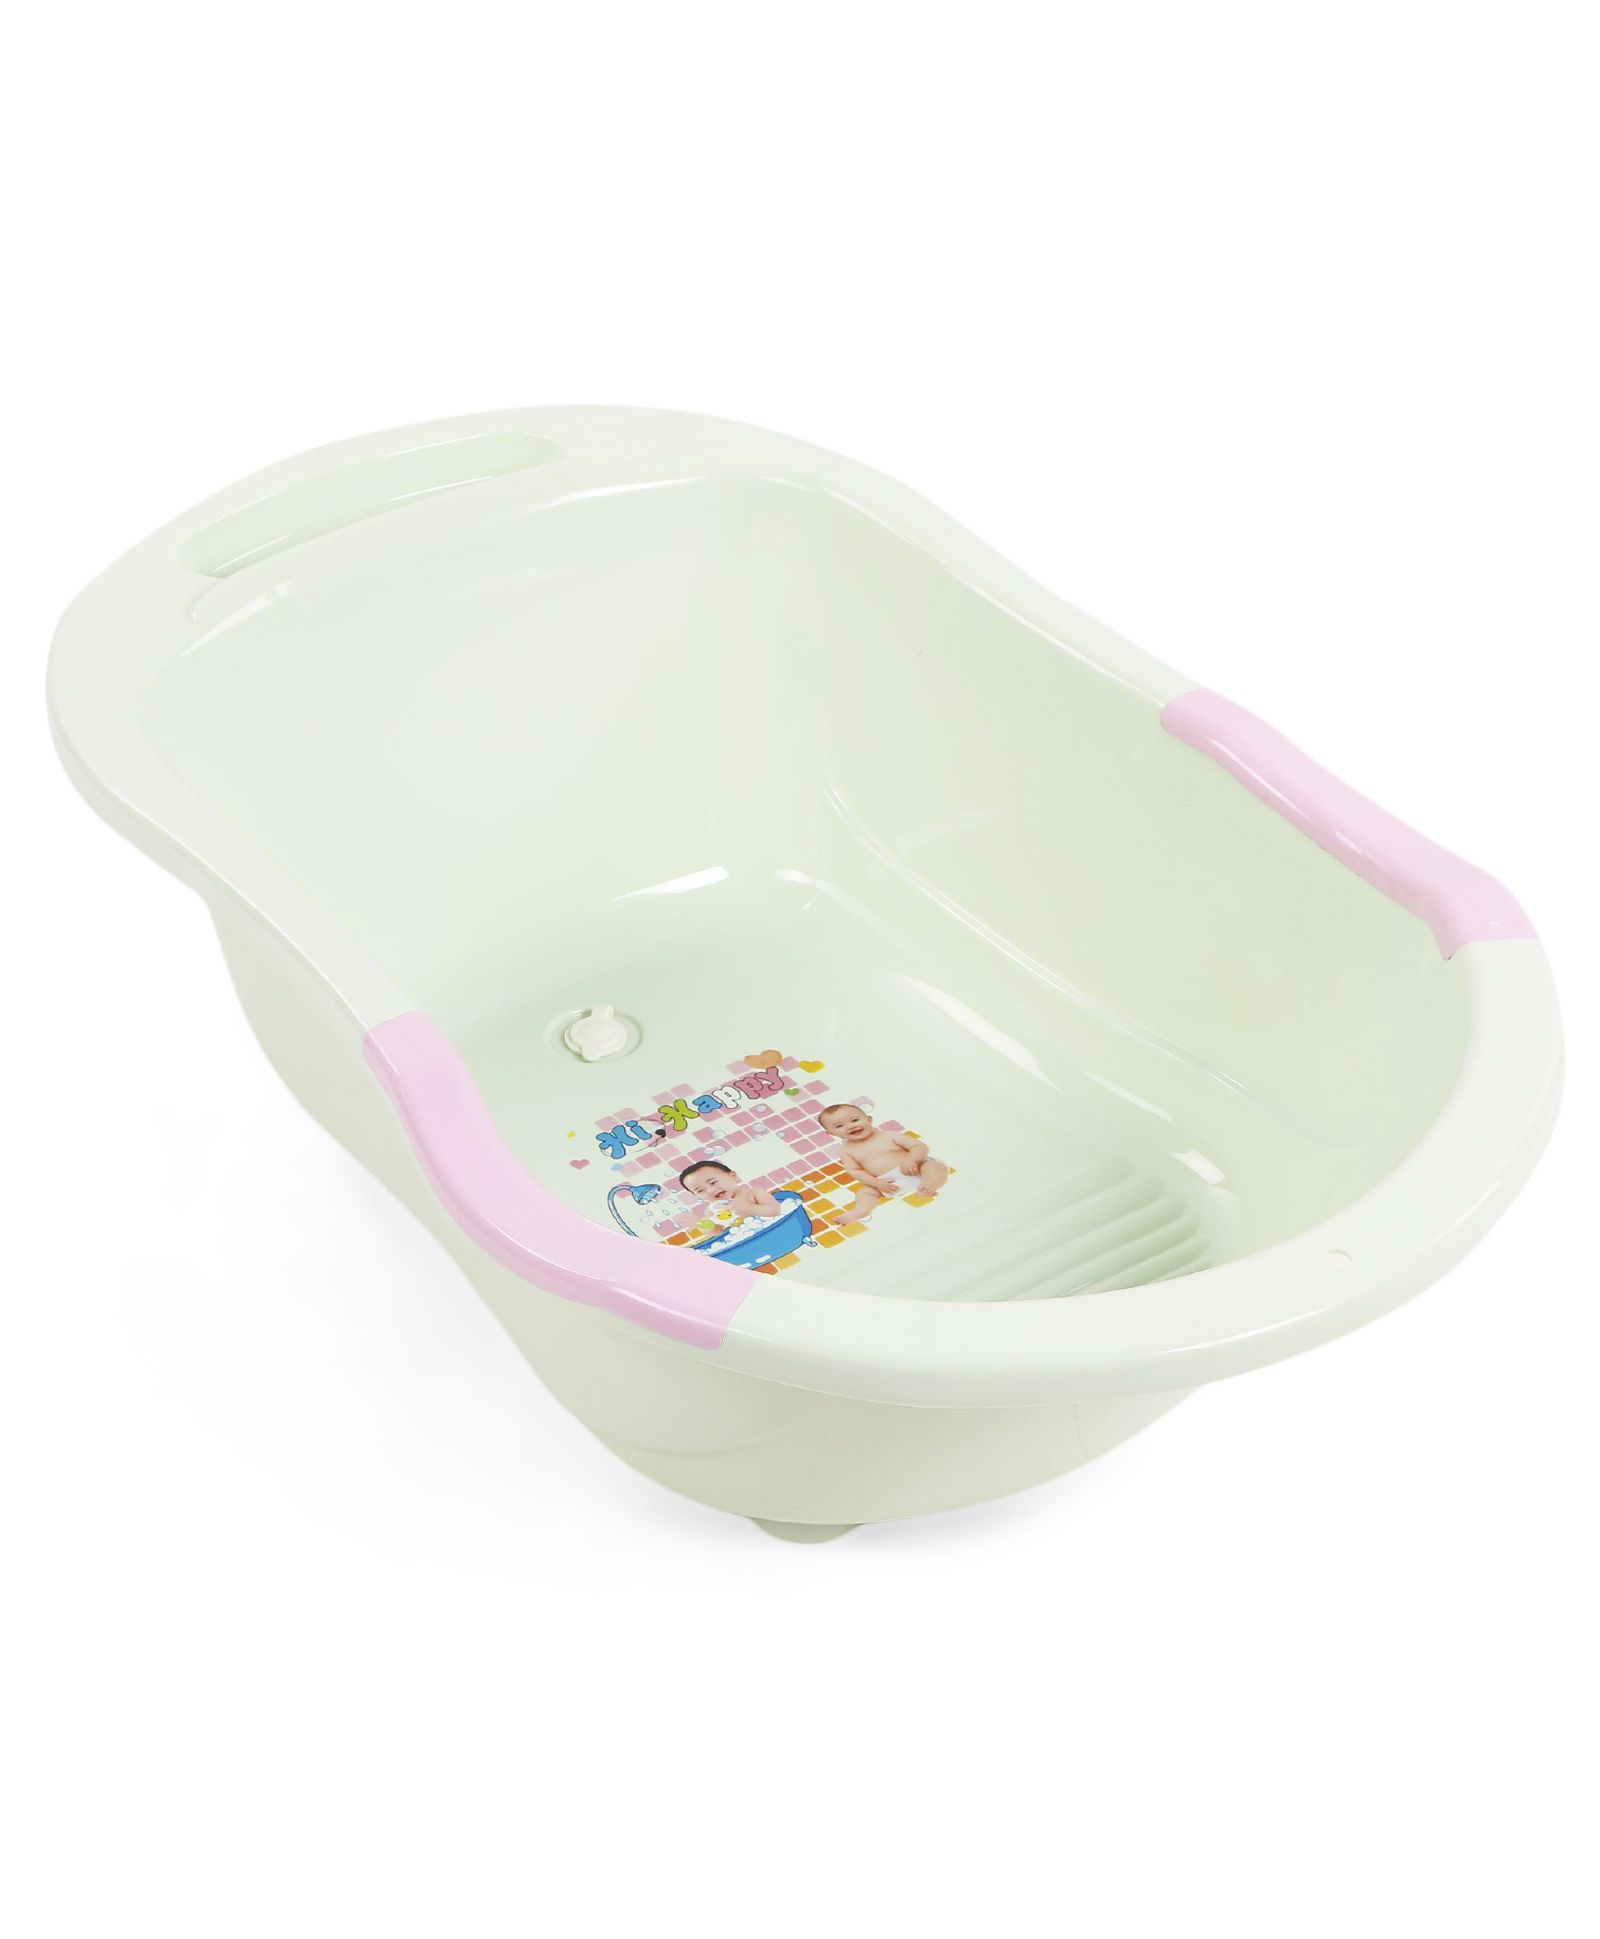 Baby Bathtub With Print - Off White & Pink